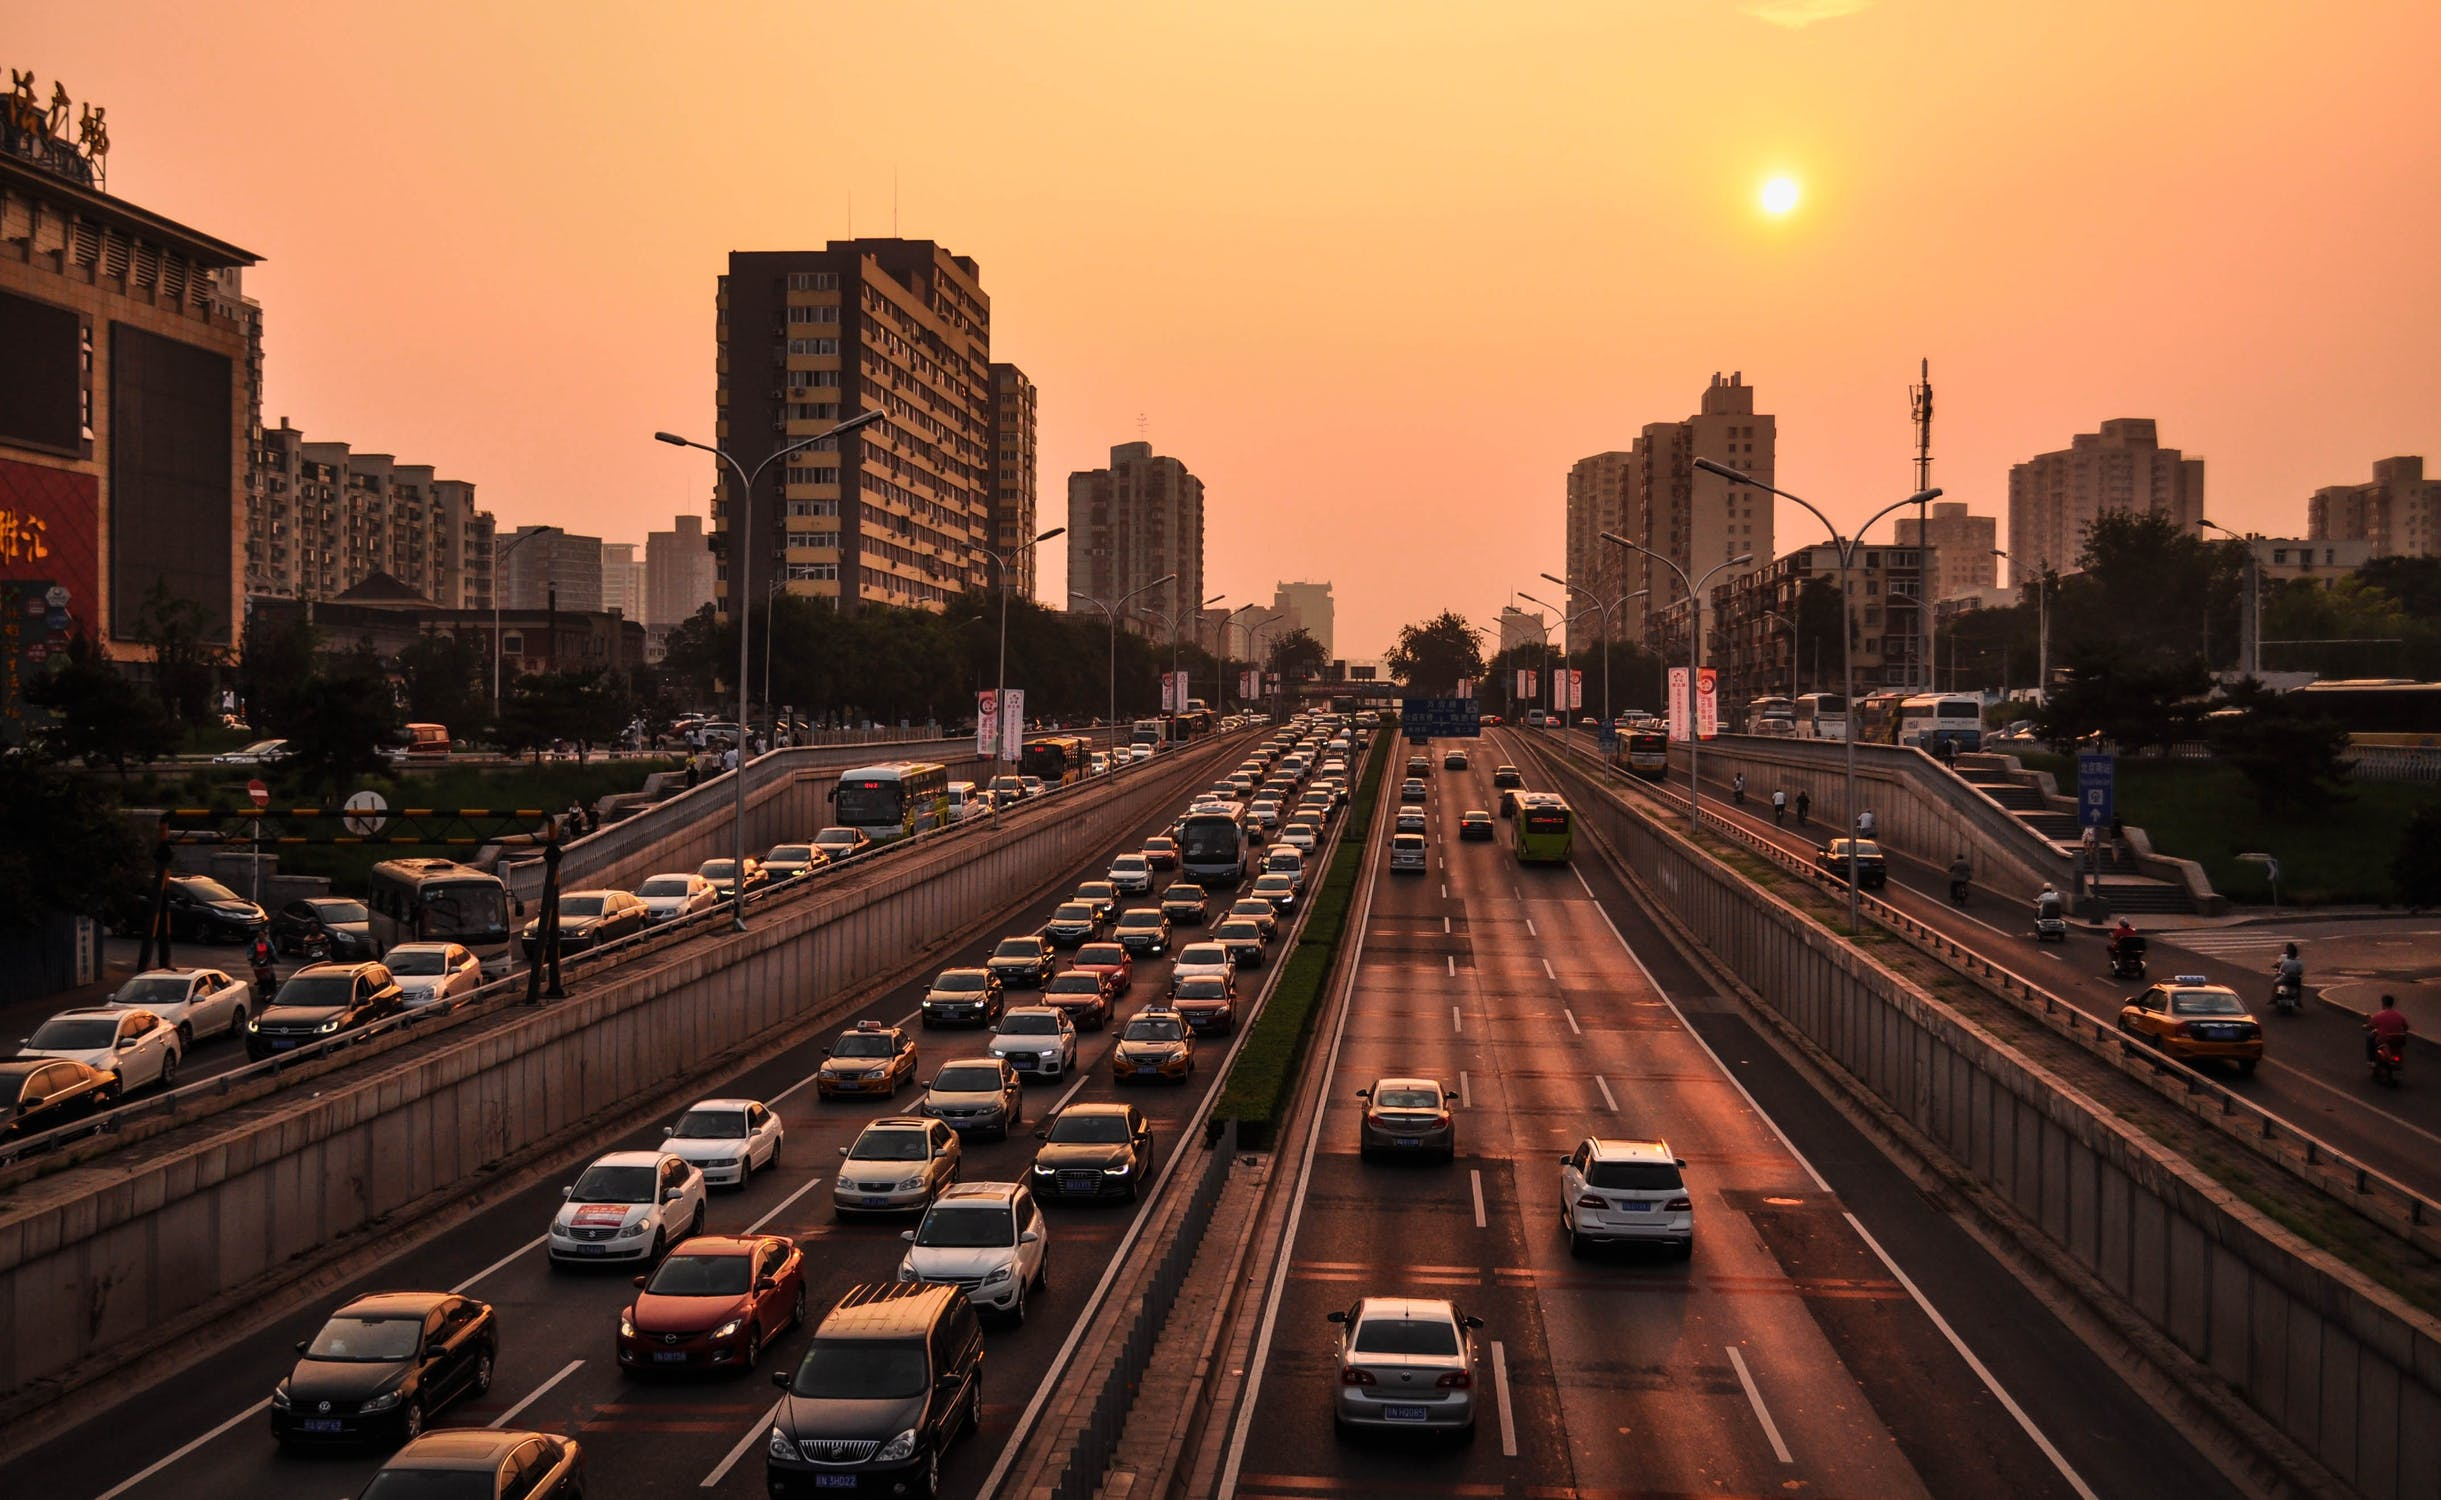 Photos of city sunset with line of cars in traffic